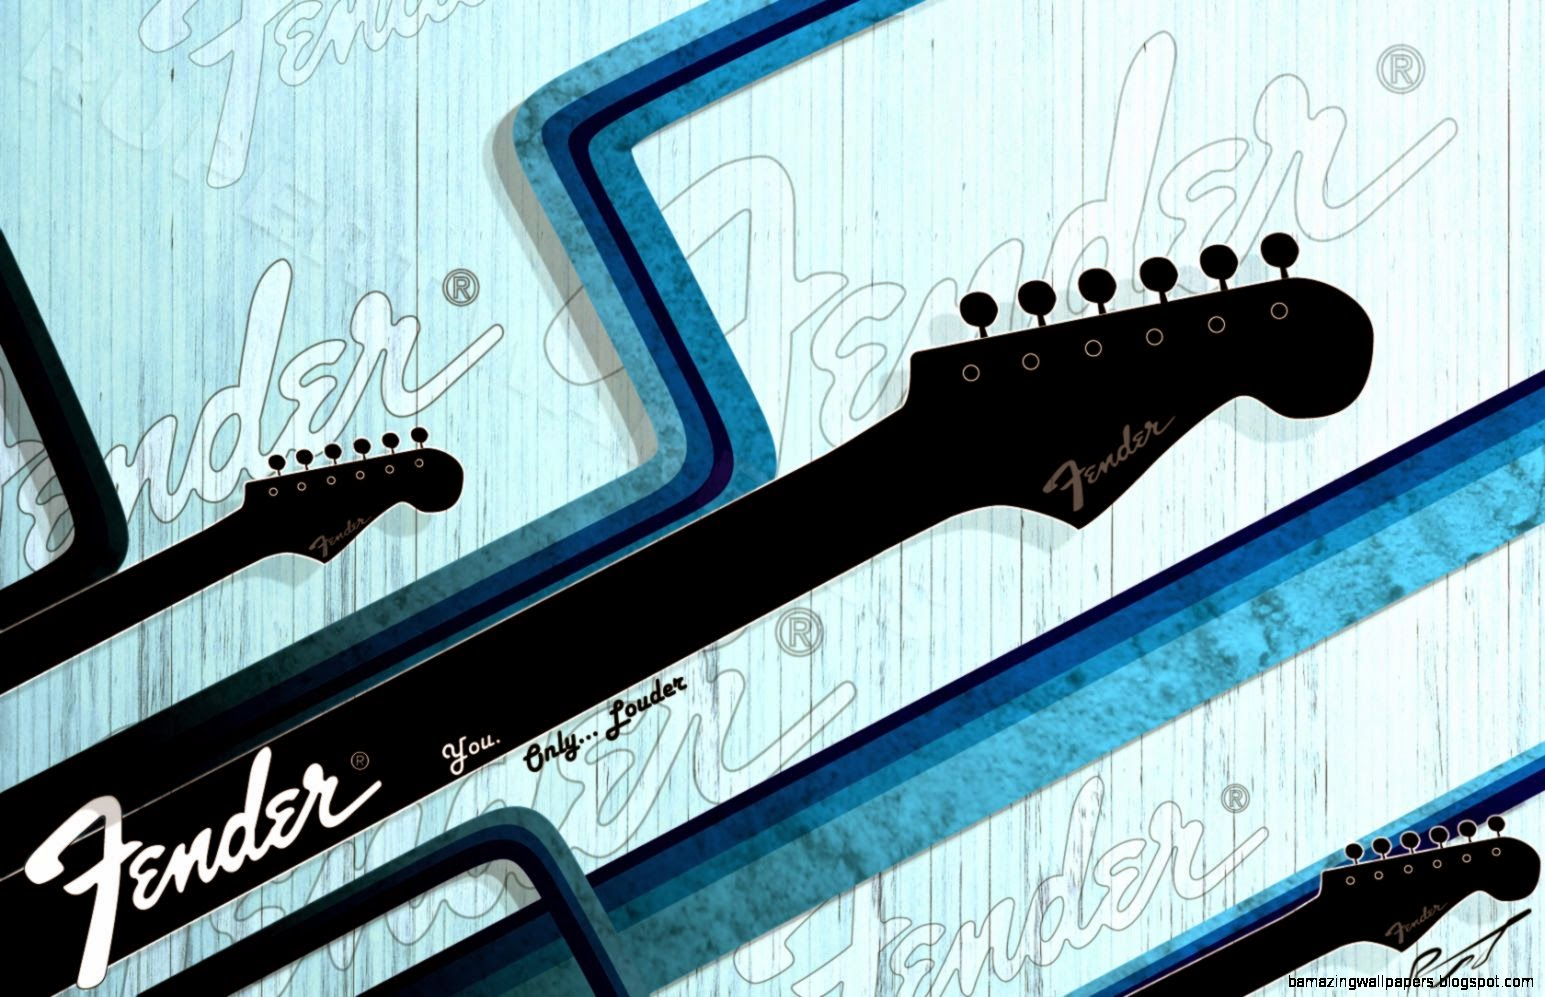 Fender Graphic art Wallpaper by RupertWarries on DeviantArt